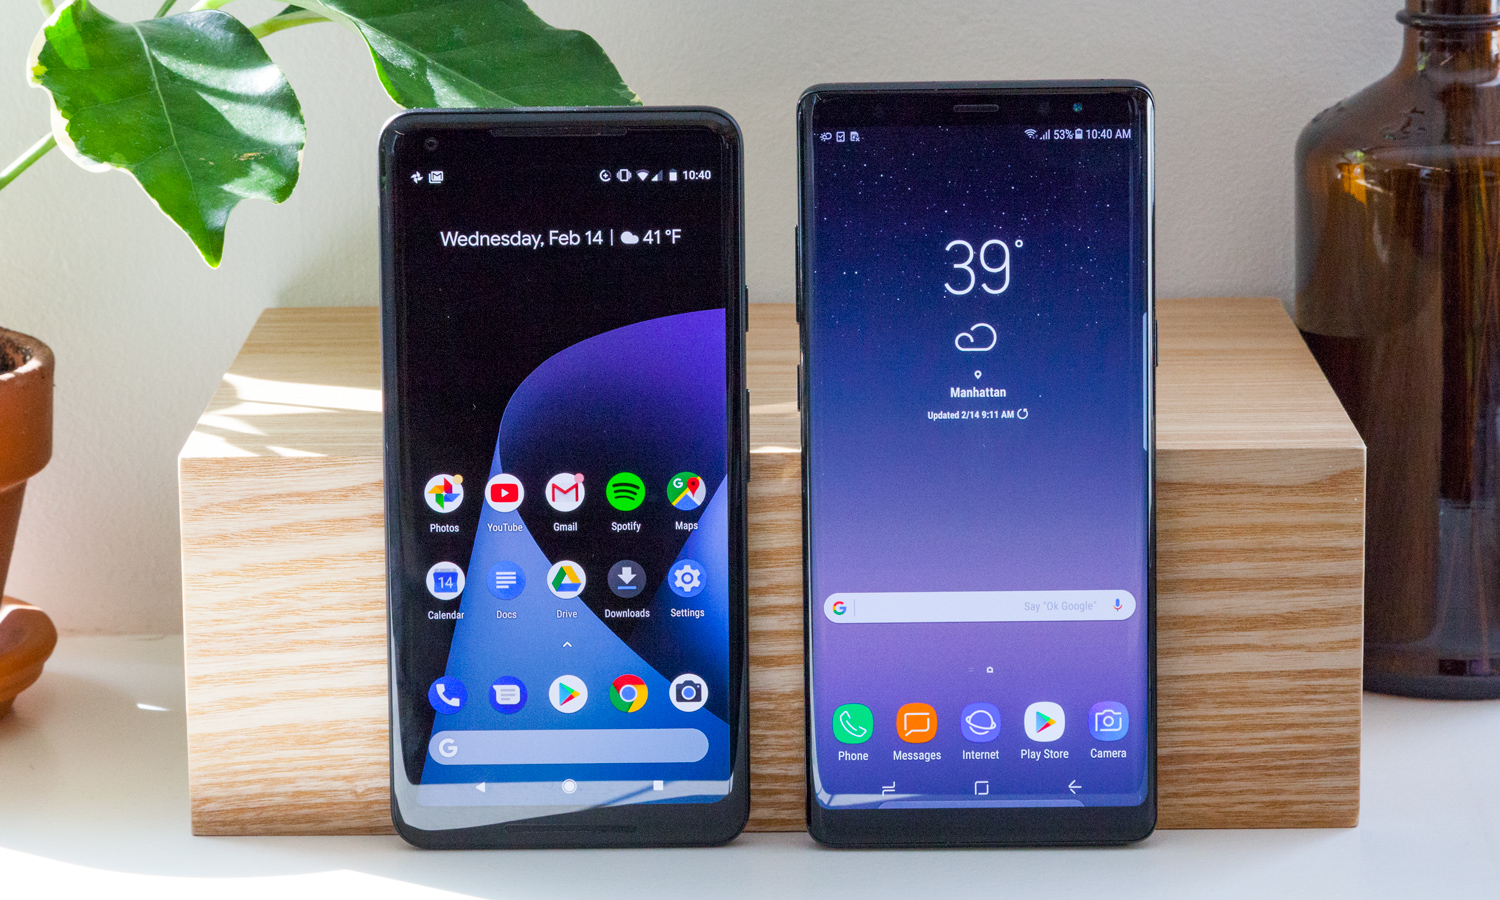 ec41699dc0f8 Pixel 2 XL vs. Galaxy Note 8: A Photo Finish | Tom's Guide